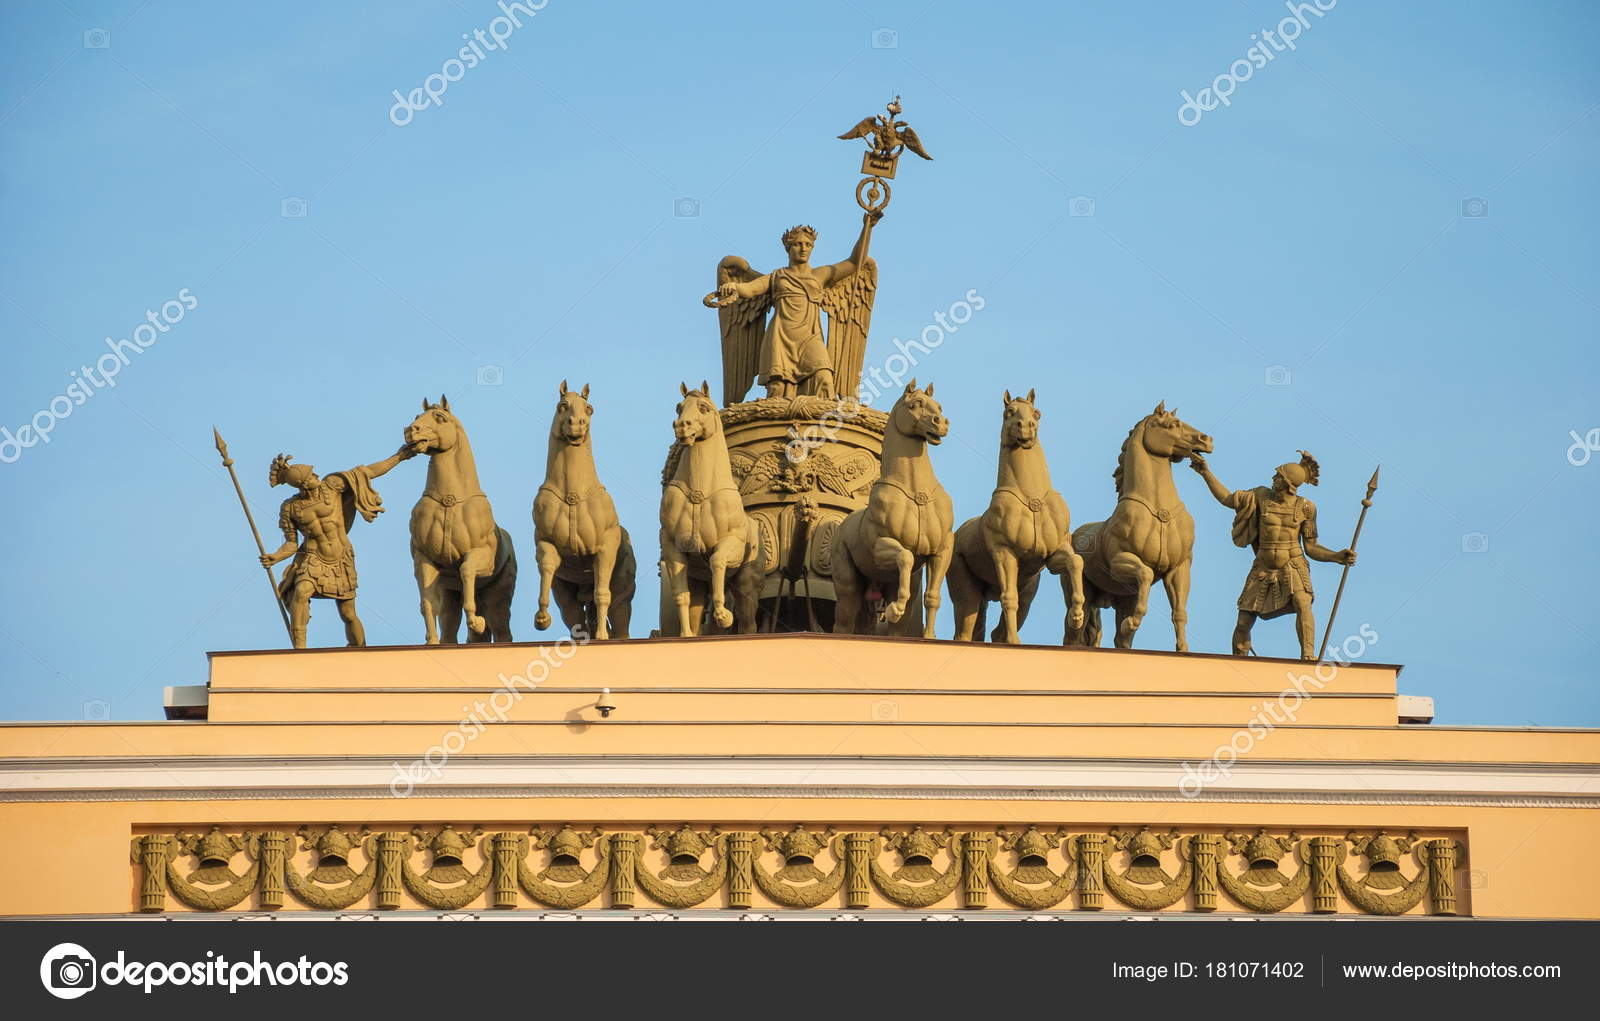 Ancient Sculpture Depicts Goddess Victory Nike Chariot — Stock Photo